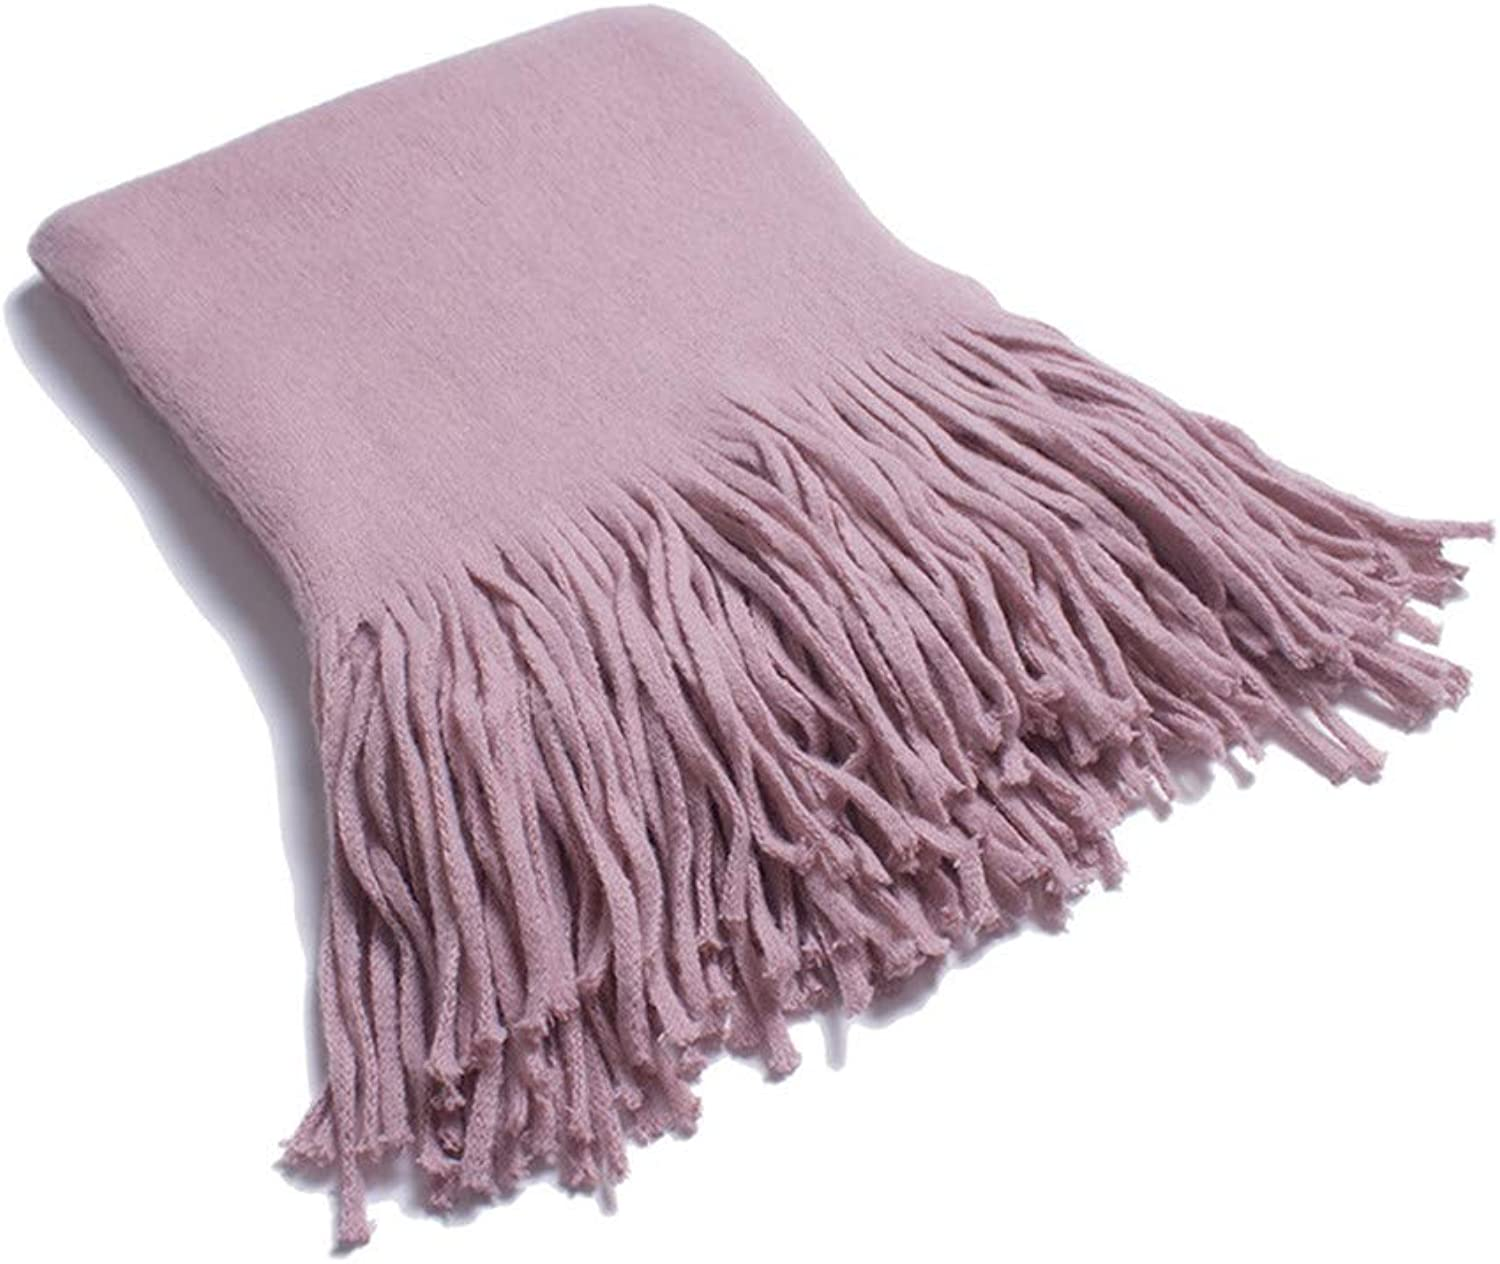 Scarf Women's Solid color Soft Scarf Highgrade Comfortable Breathable Business Casual Tassel Ends Long Wrap Shawl, Fashion Scarves (color   Pink)